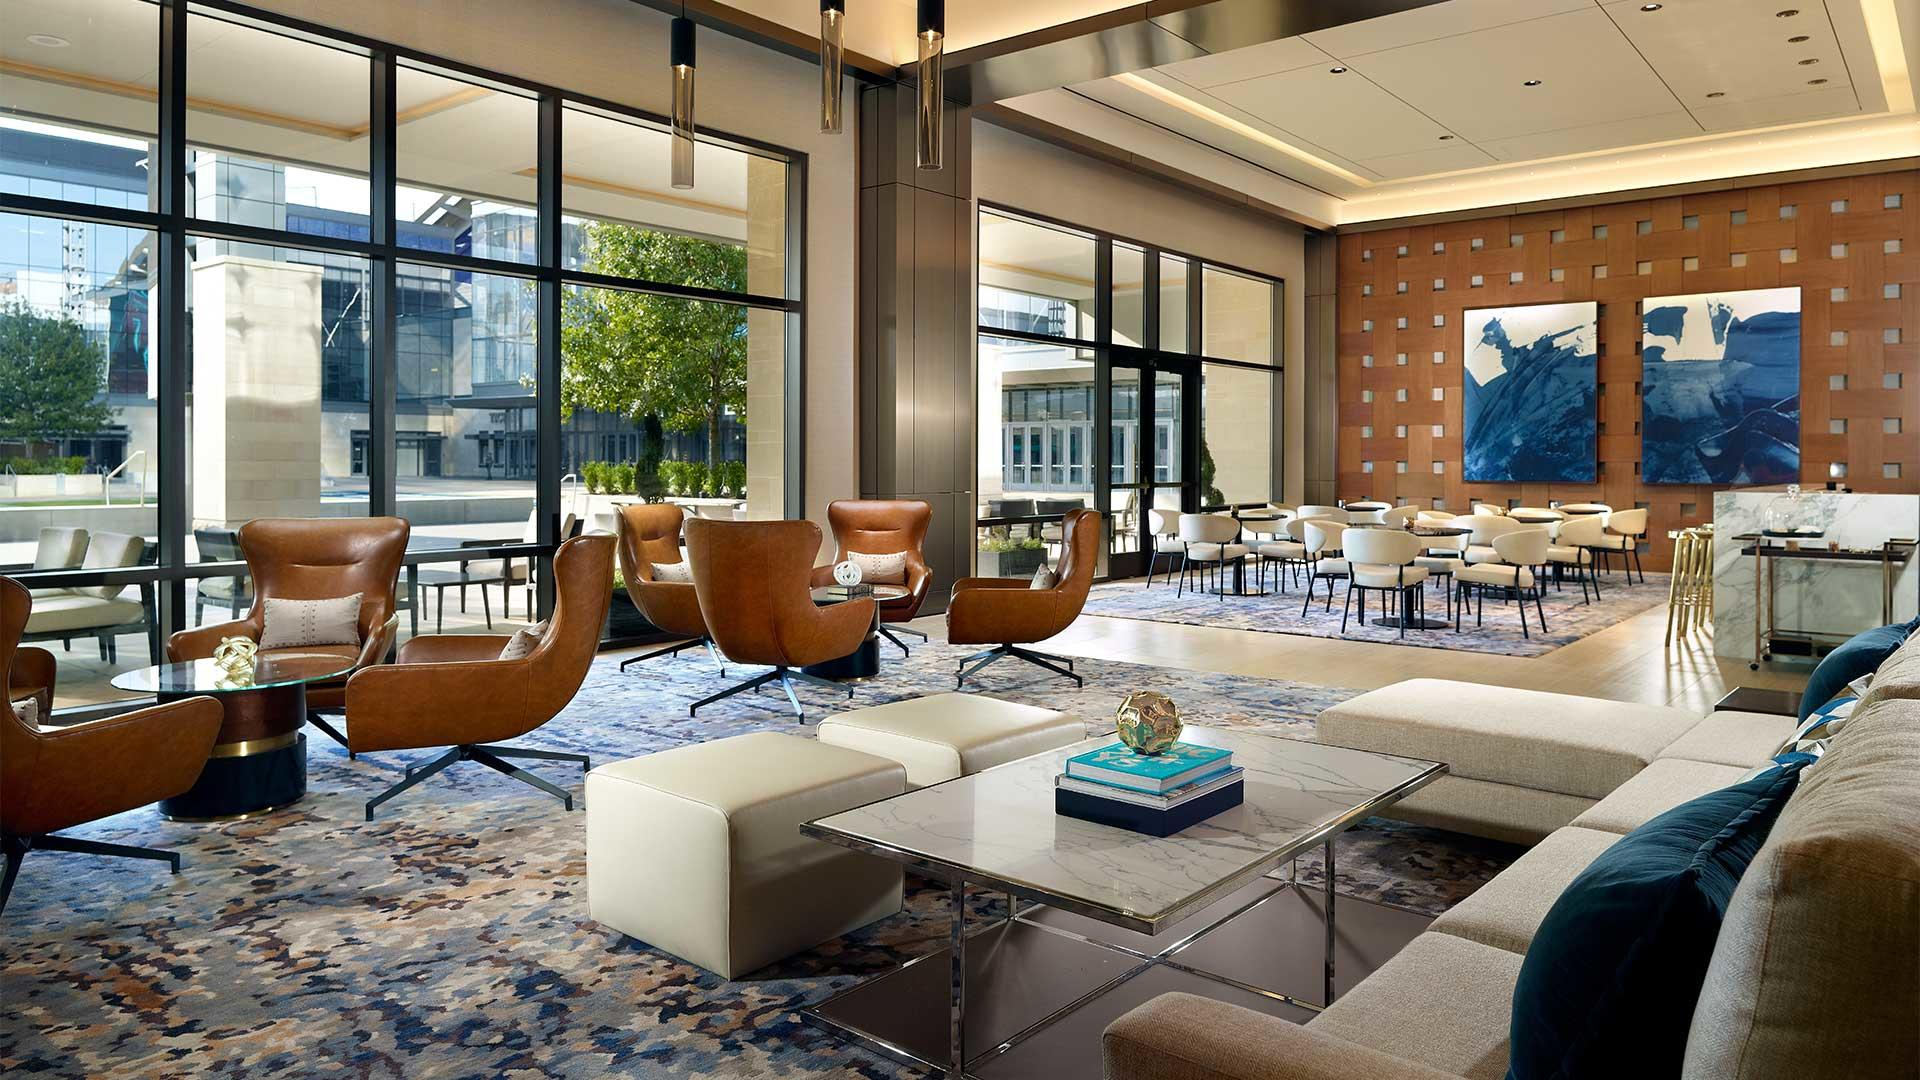 Free Photo Hotel Lobby Seating Architecture Lounge Tint Free Download Jooinn